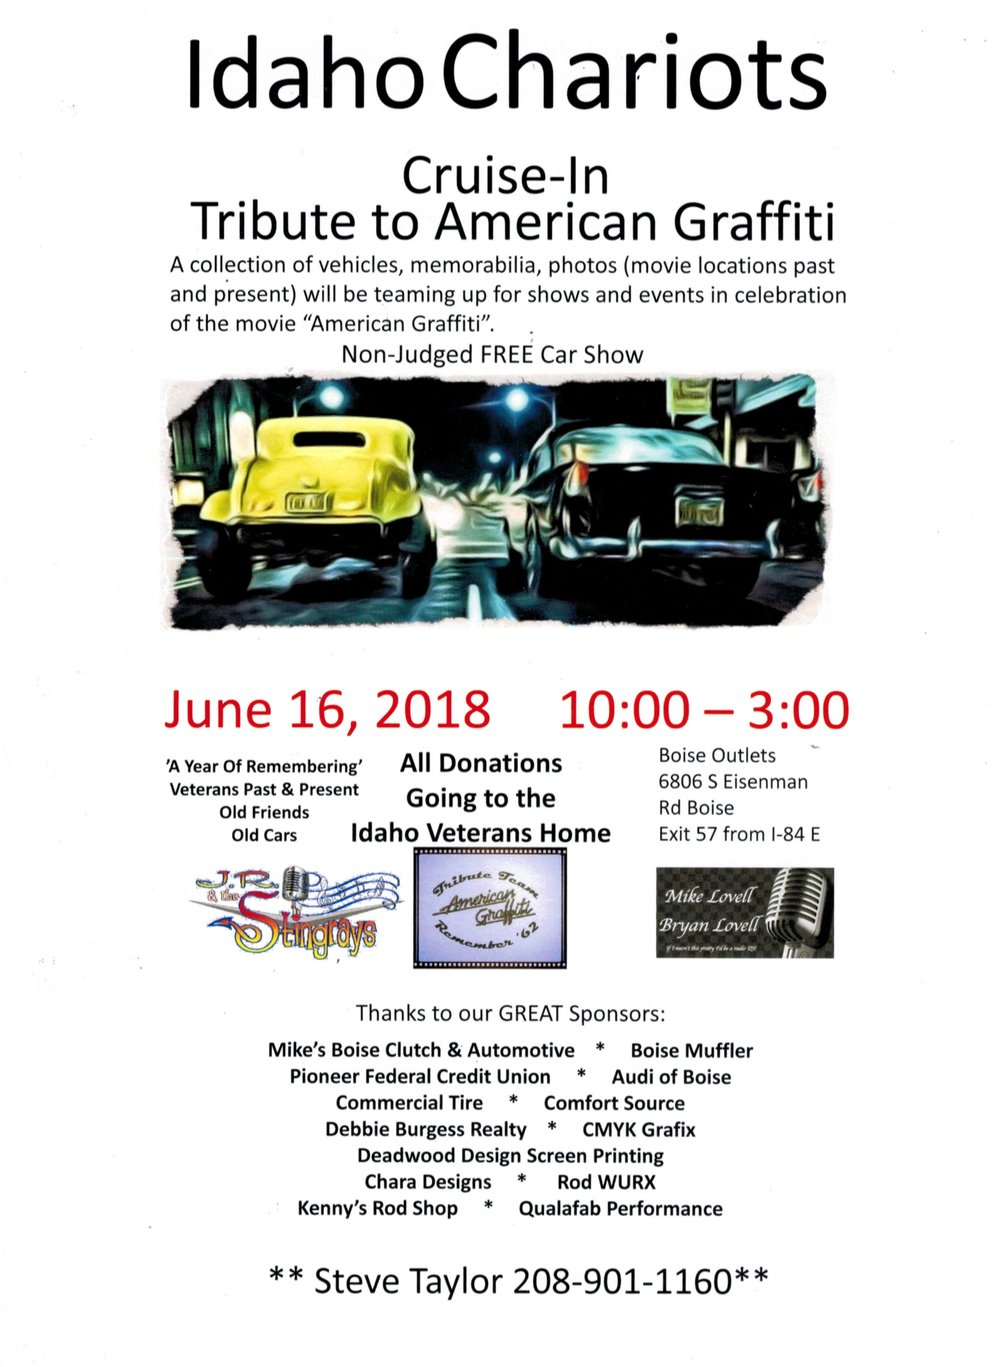 Boise - Idaho Chariots 2018 Cruise-In Event REVISED Flyer (002).jpg